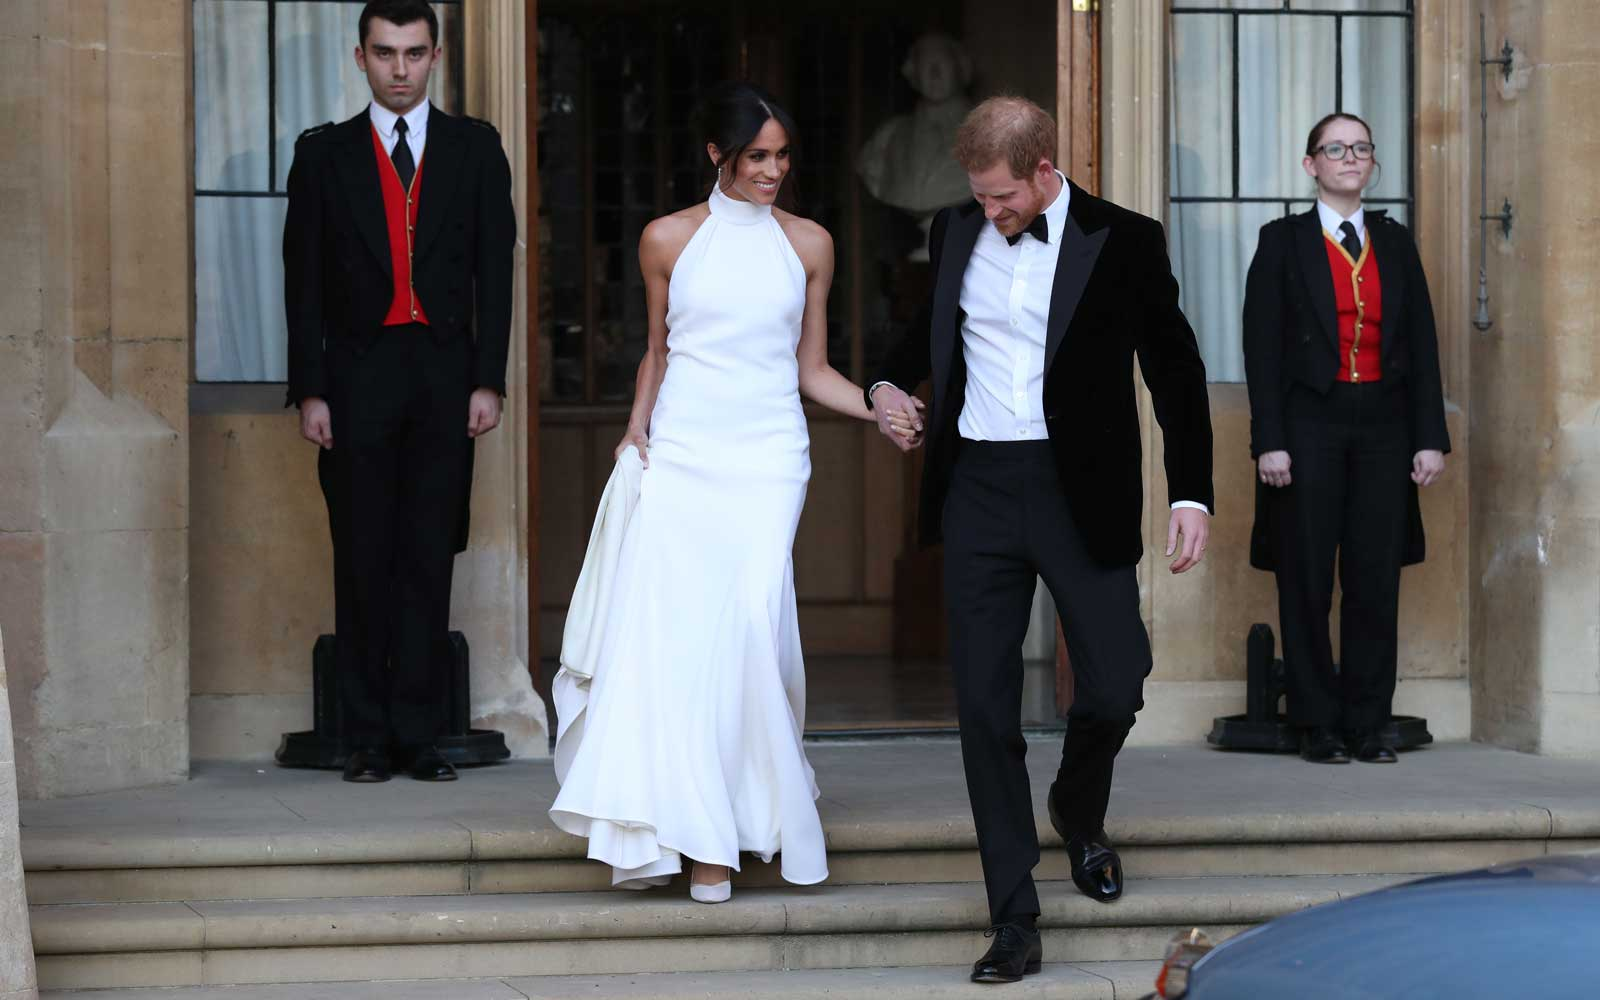 Newly married Britain's Prince Harry, Duke of Sussex and Meghan Markle, Duchess of Sussex, leave Windsor Castle in Windsor